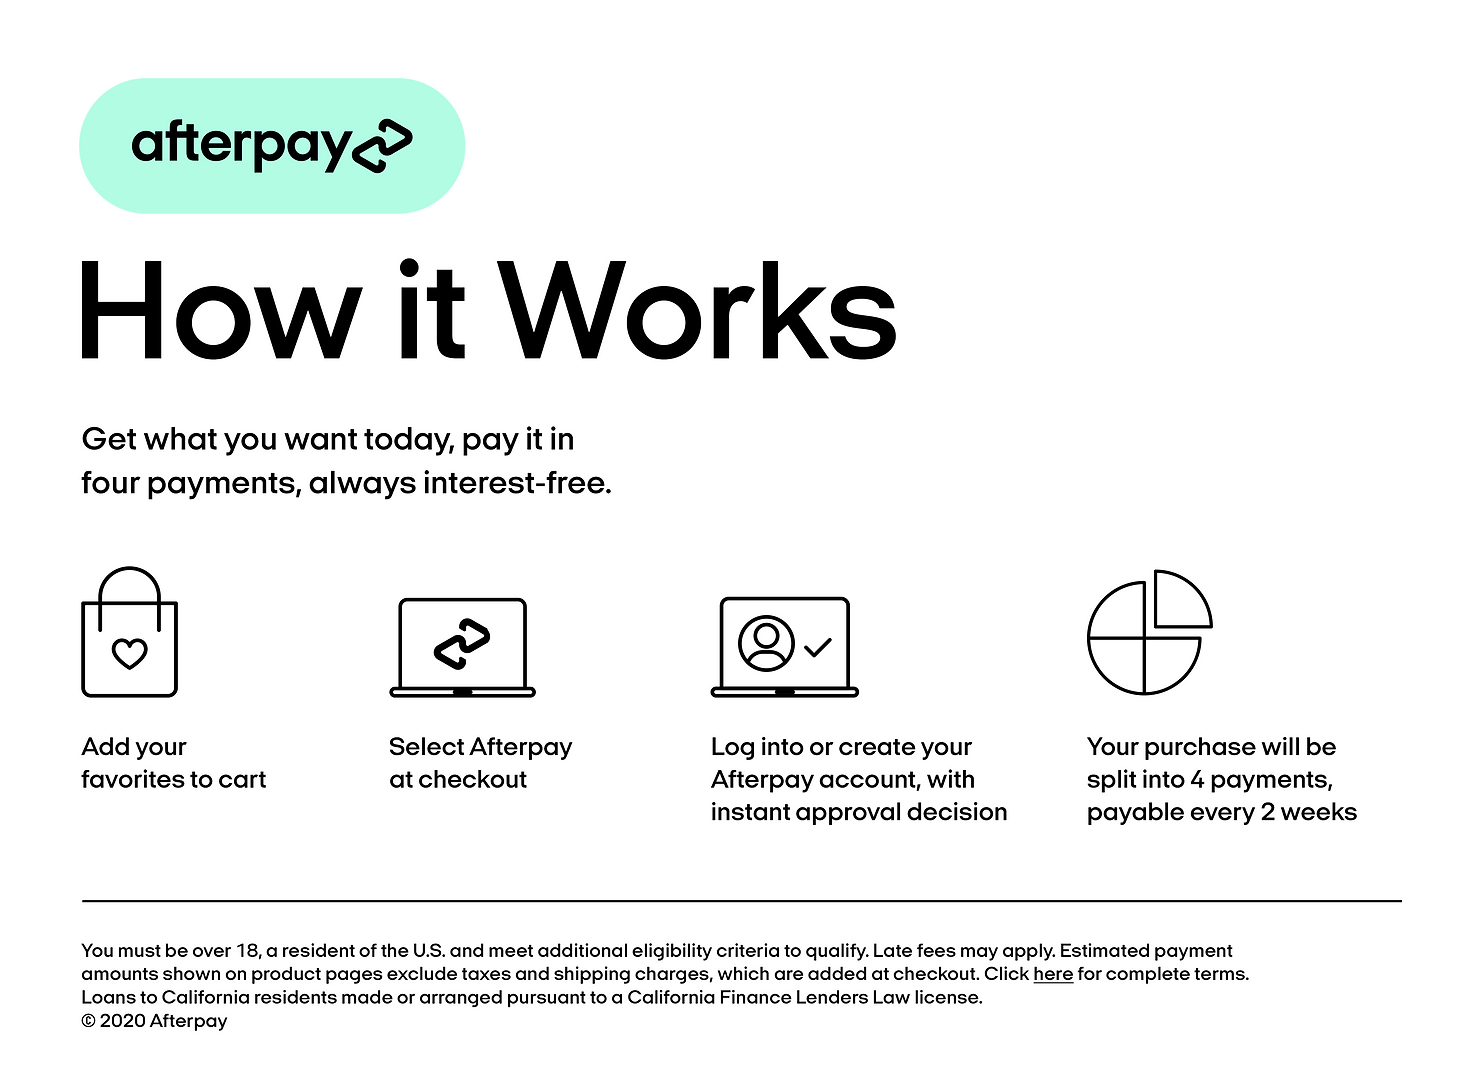 Afterpay_US_HowitWorks_Desktop_White@3x.